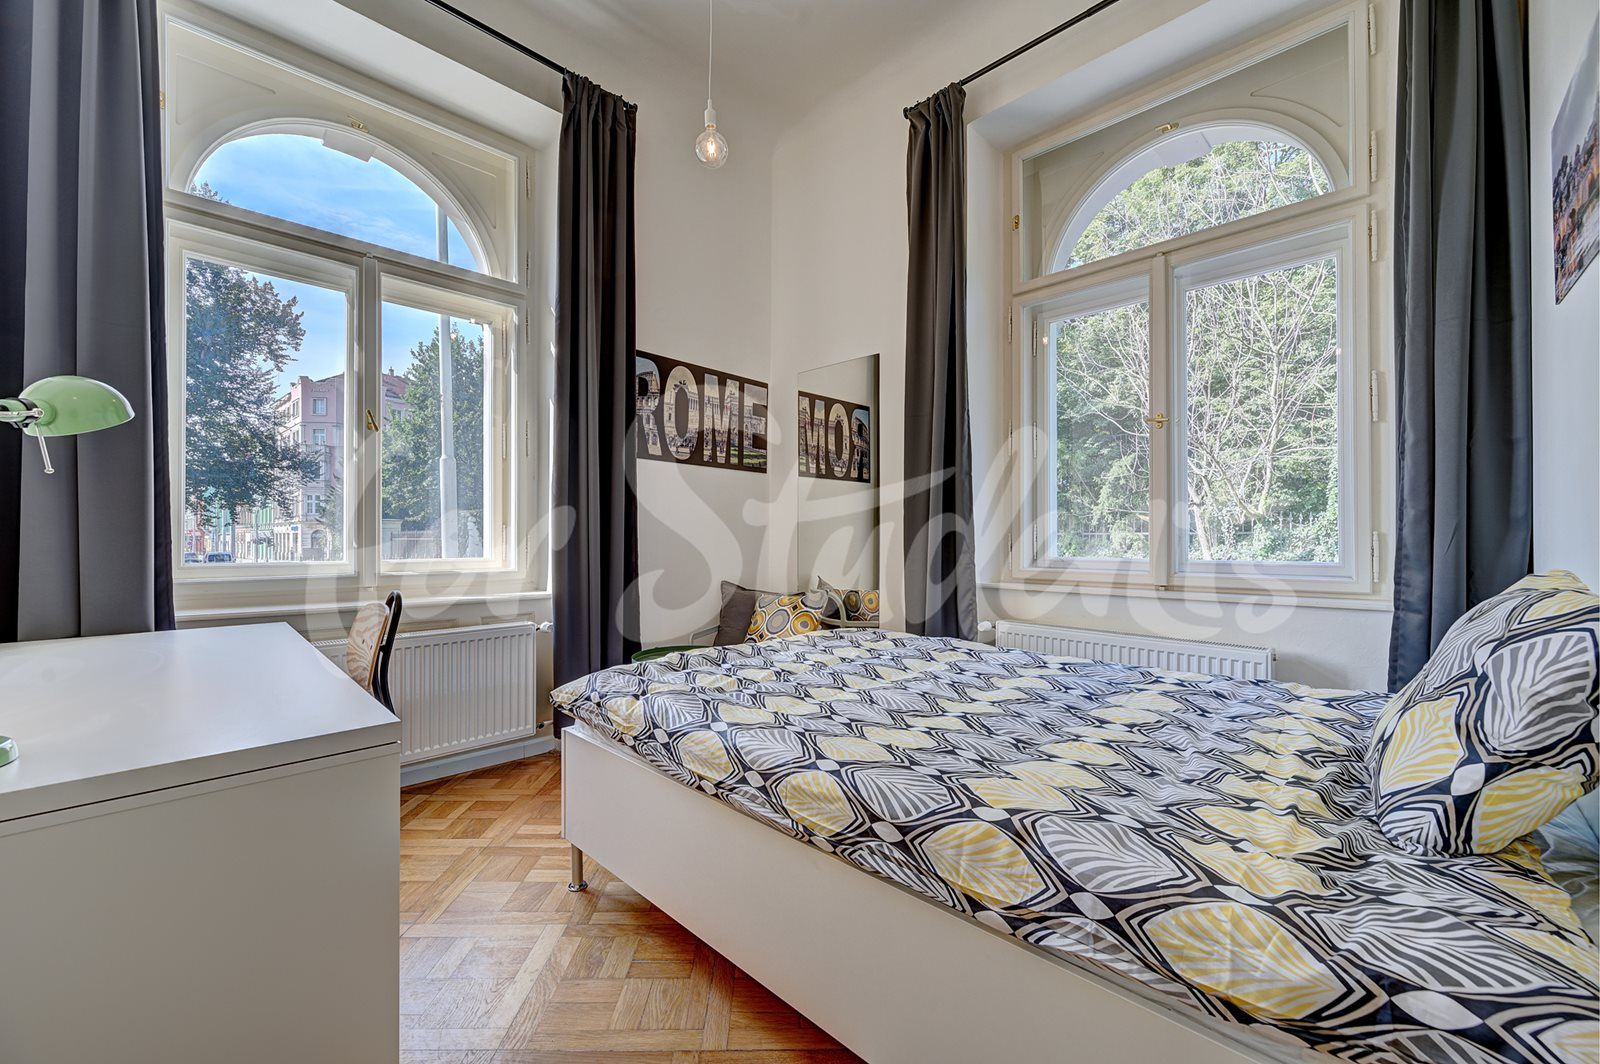 Rooms available in New Students House, close to city center, Prague - DISCOUNTED!